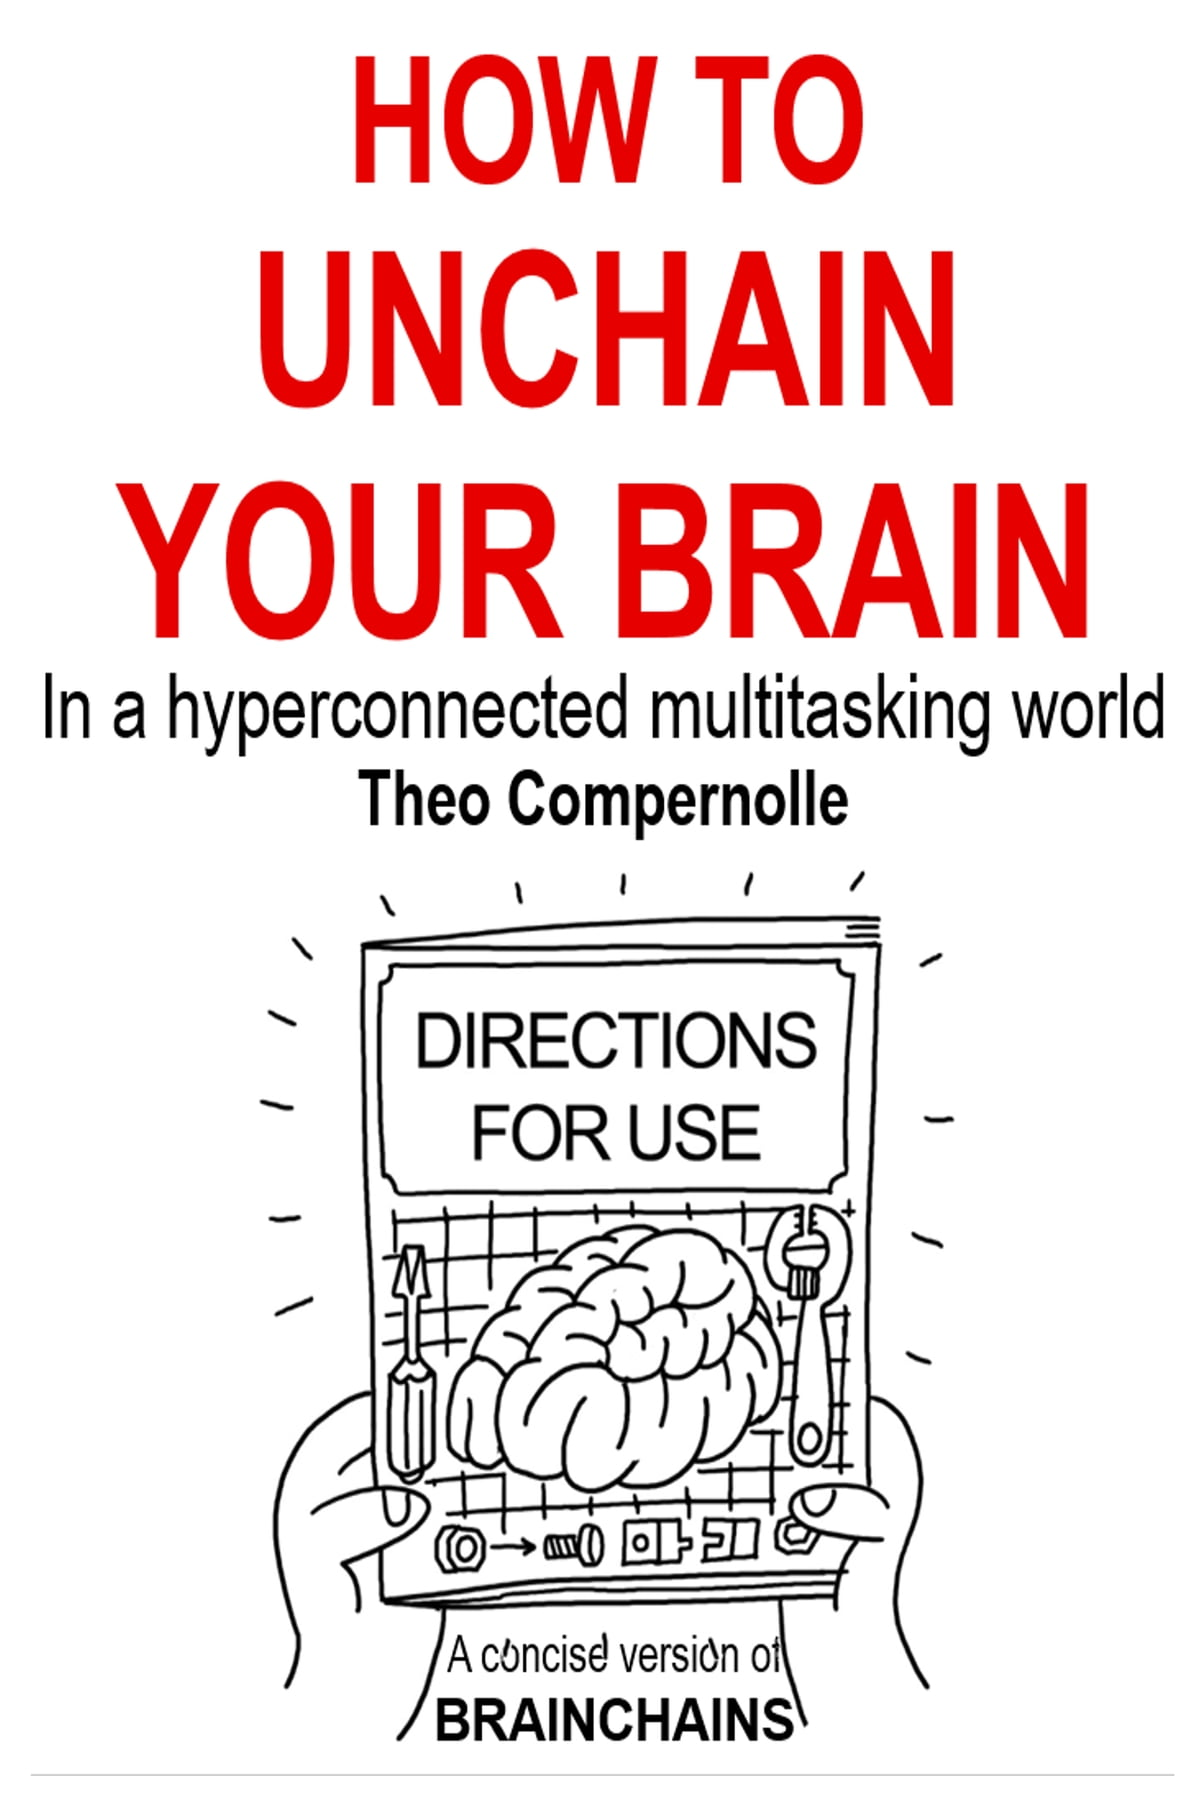 How To Unchain Your Brain In A Hyper Connected Multitasking World Ebook Di Theo Compernolle 9789082205862 Rakuten Kobo Italia